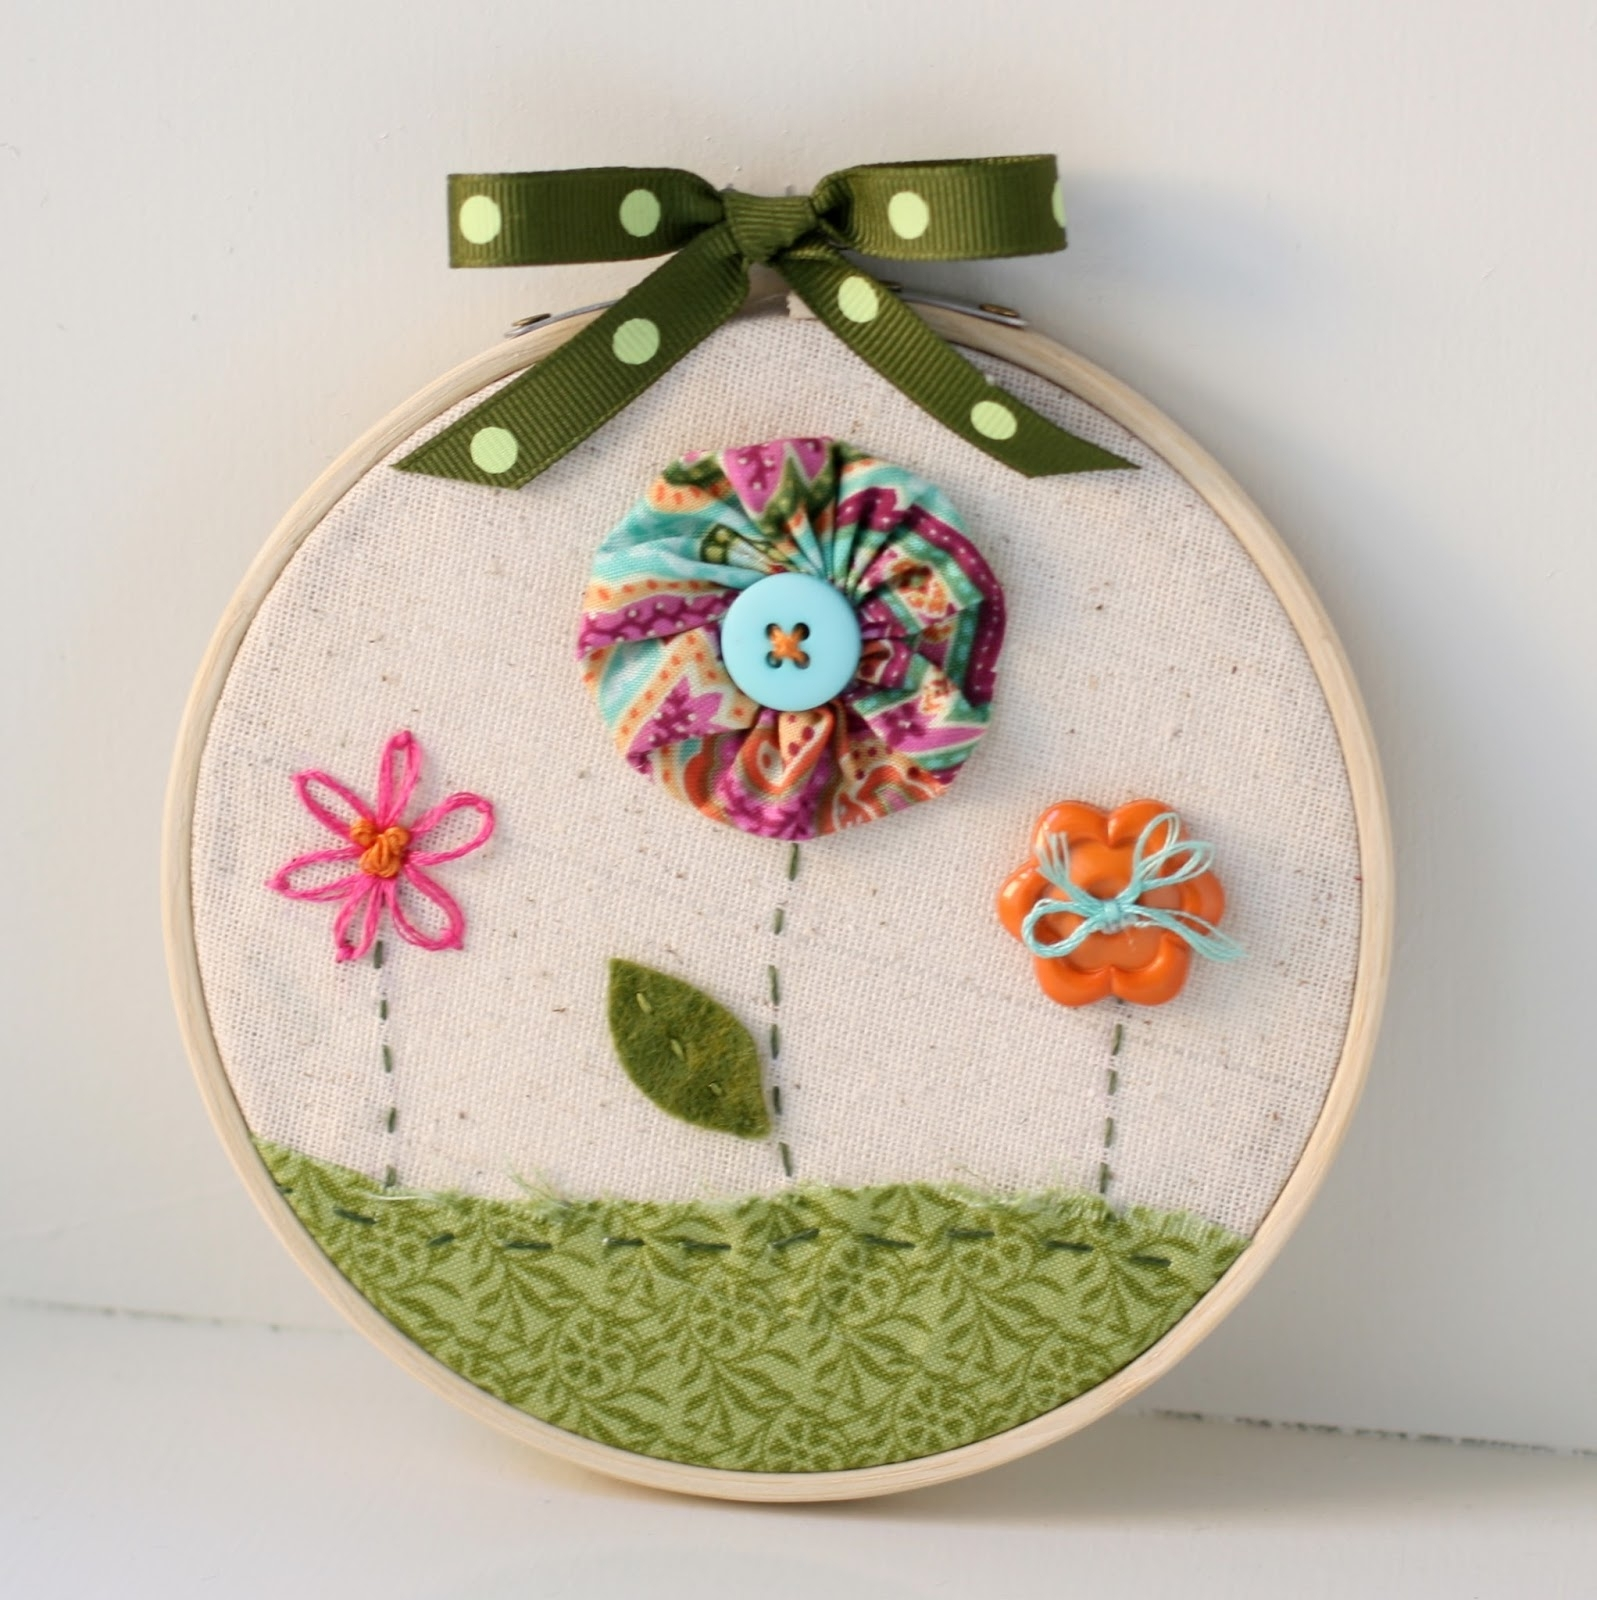 Bunches And Bits: Hoop Art Wall Hanging Inside Most Up To Date Embroidery Hoop Fabric Wall Art (View 4 of 15)